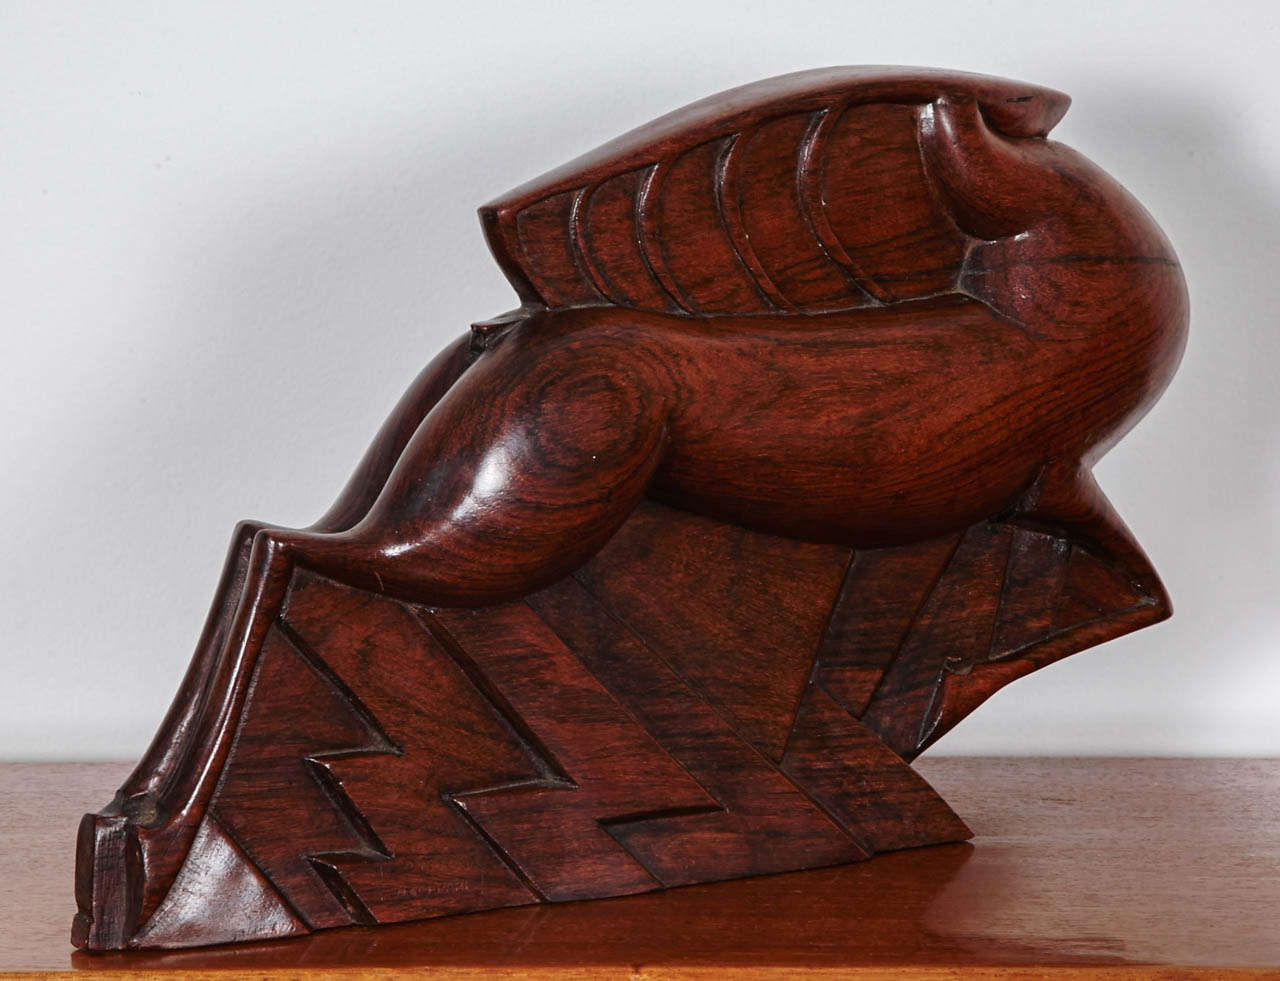 'Gazelle' Rosewood Art Deco Sculpture by Jacques Adnet, 1926 For Sale 1